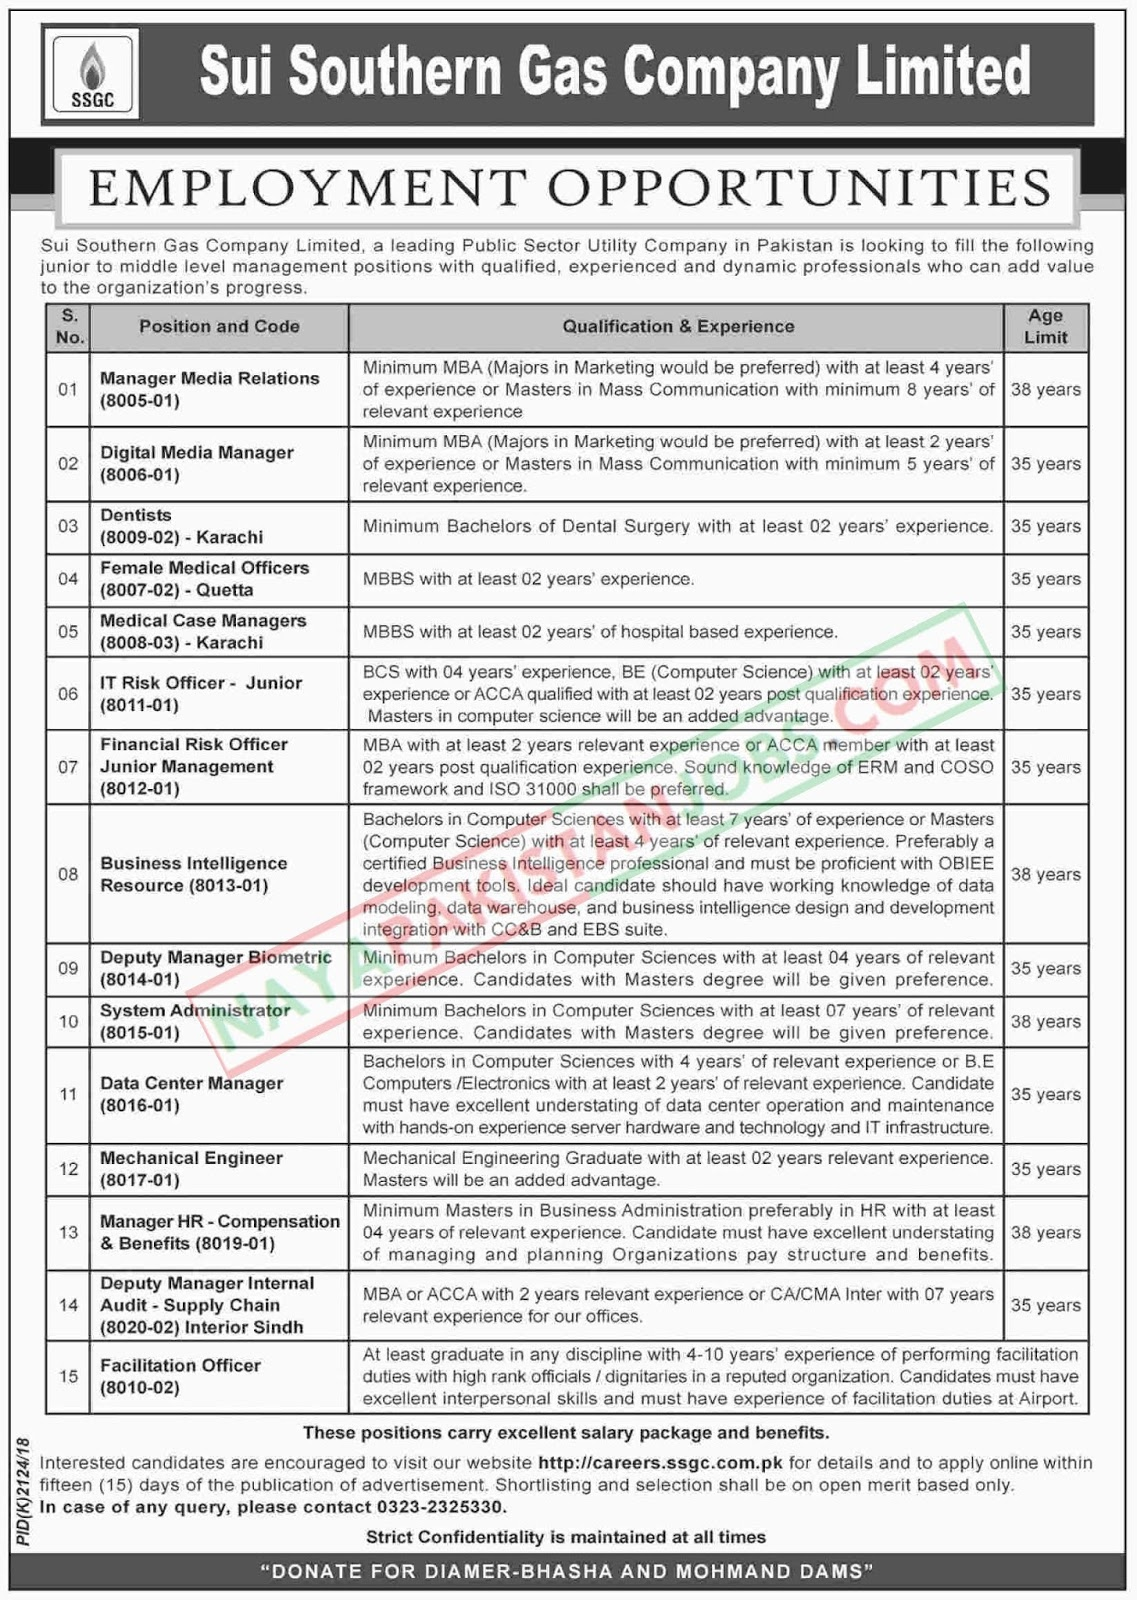 Latest Vacancies Announced in SSGC Sui Southern Gas Company Limited 3 December 2018 - Naya Pakistan